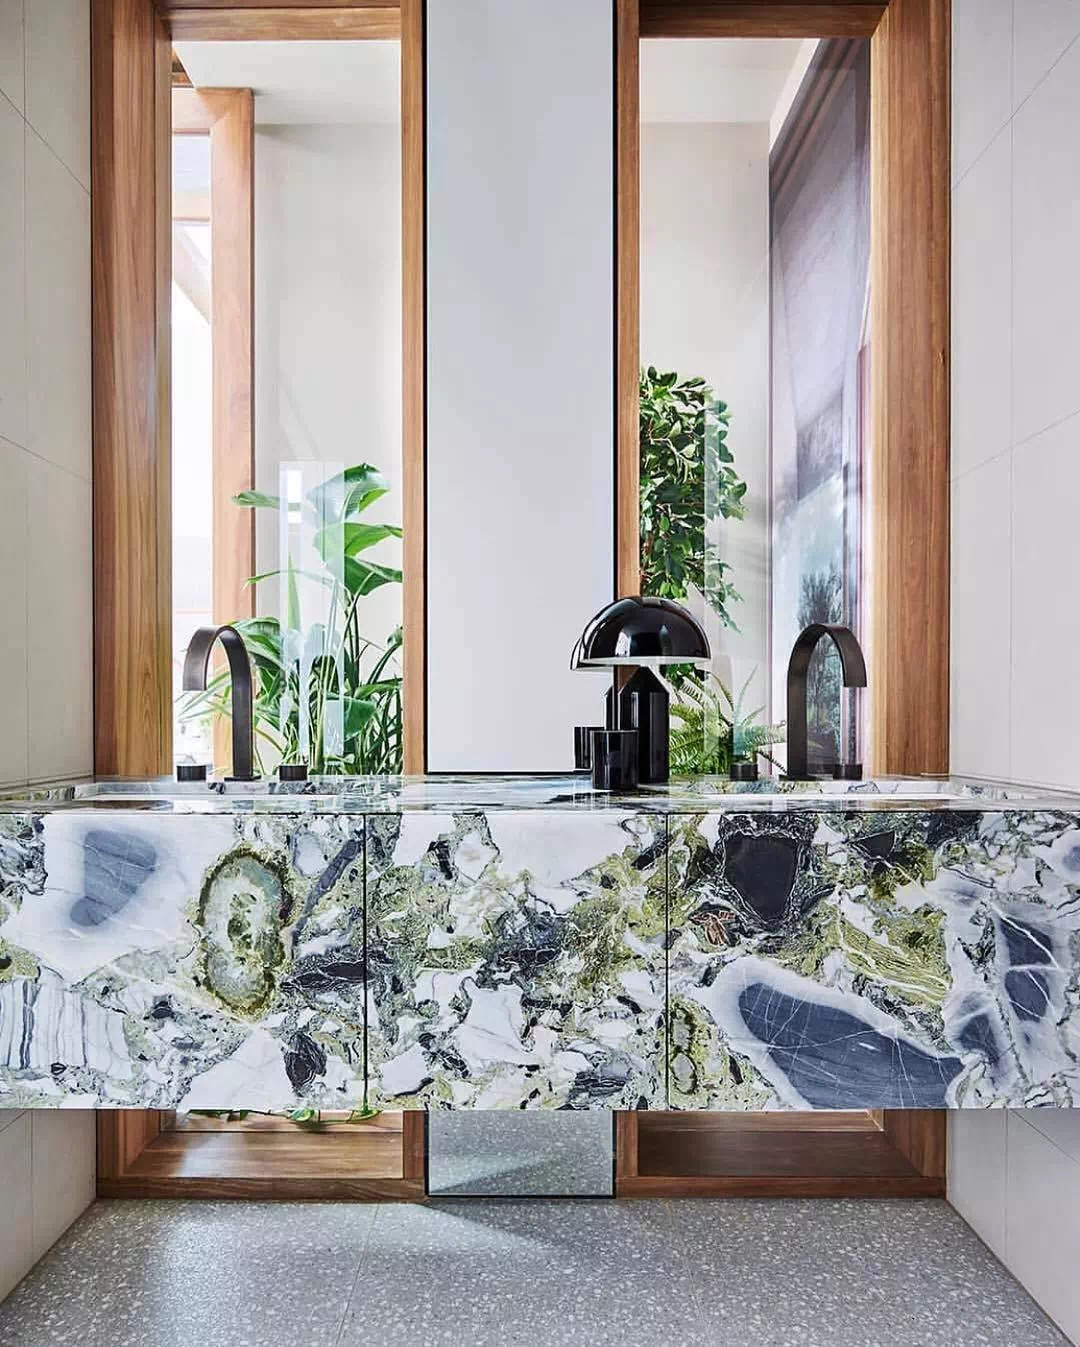 Cold Jade bathroom vanity tops countertops